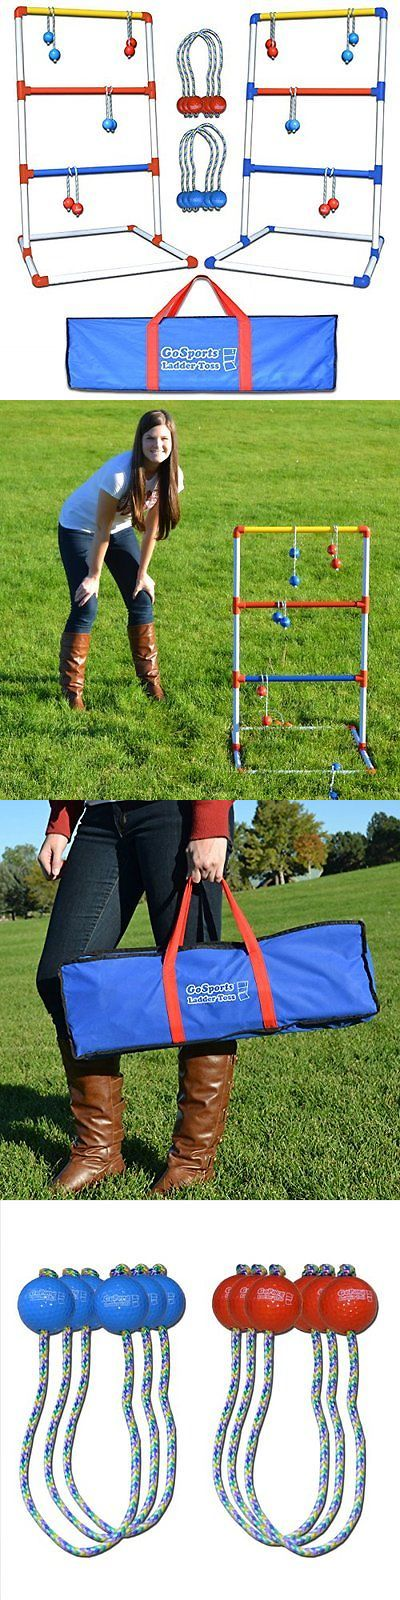 Other Backyard Games 159081: Gosports Premium Ladder Toss Game (Includes Carrying Case)...New BUY IT NOW ONLY: $45.7